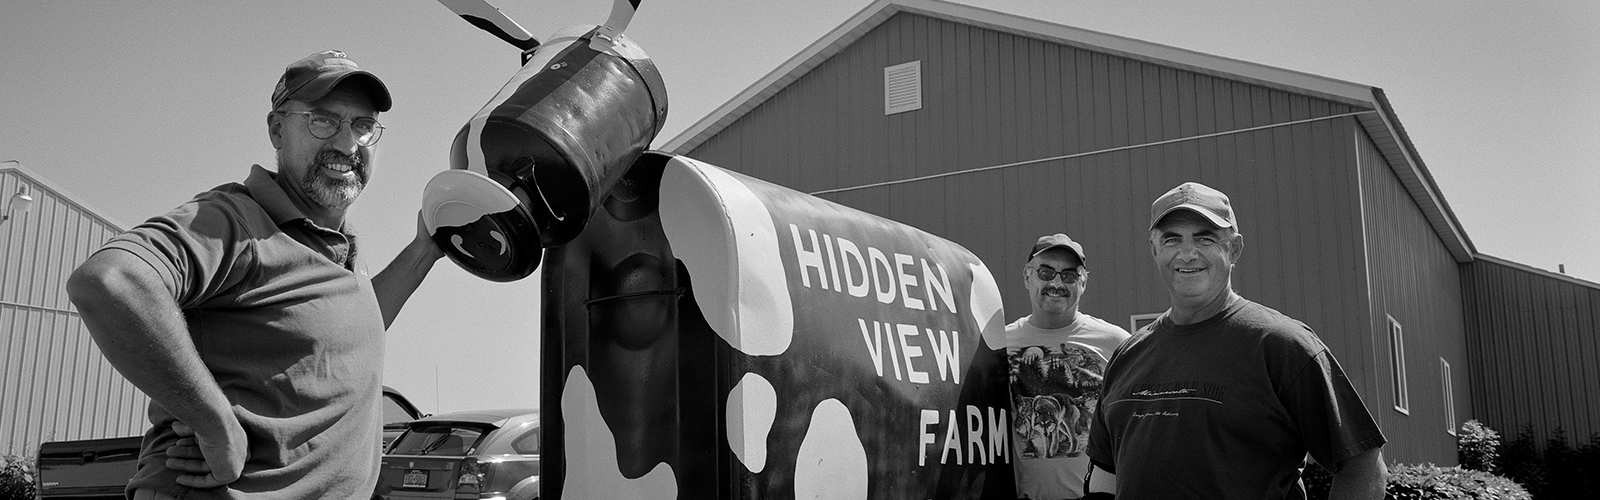 Hidden View Farm